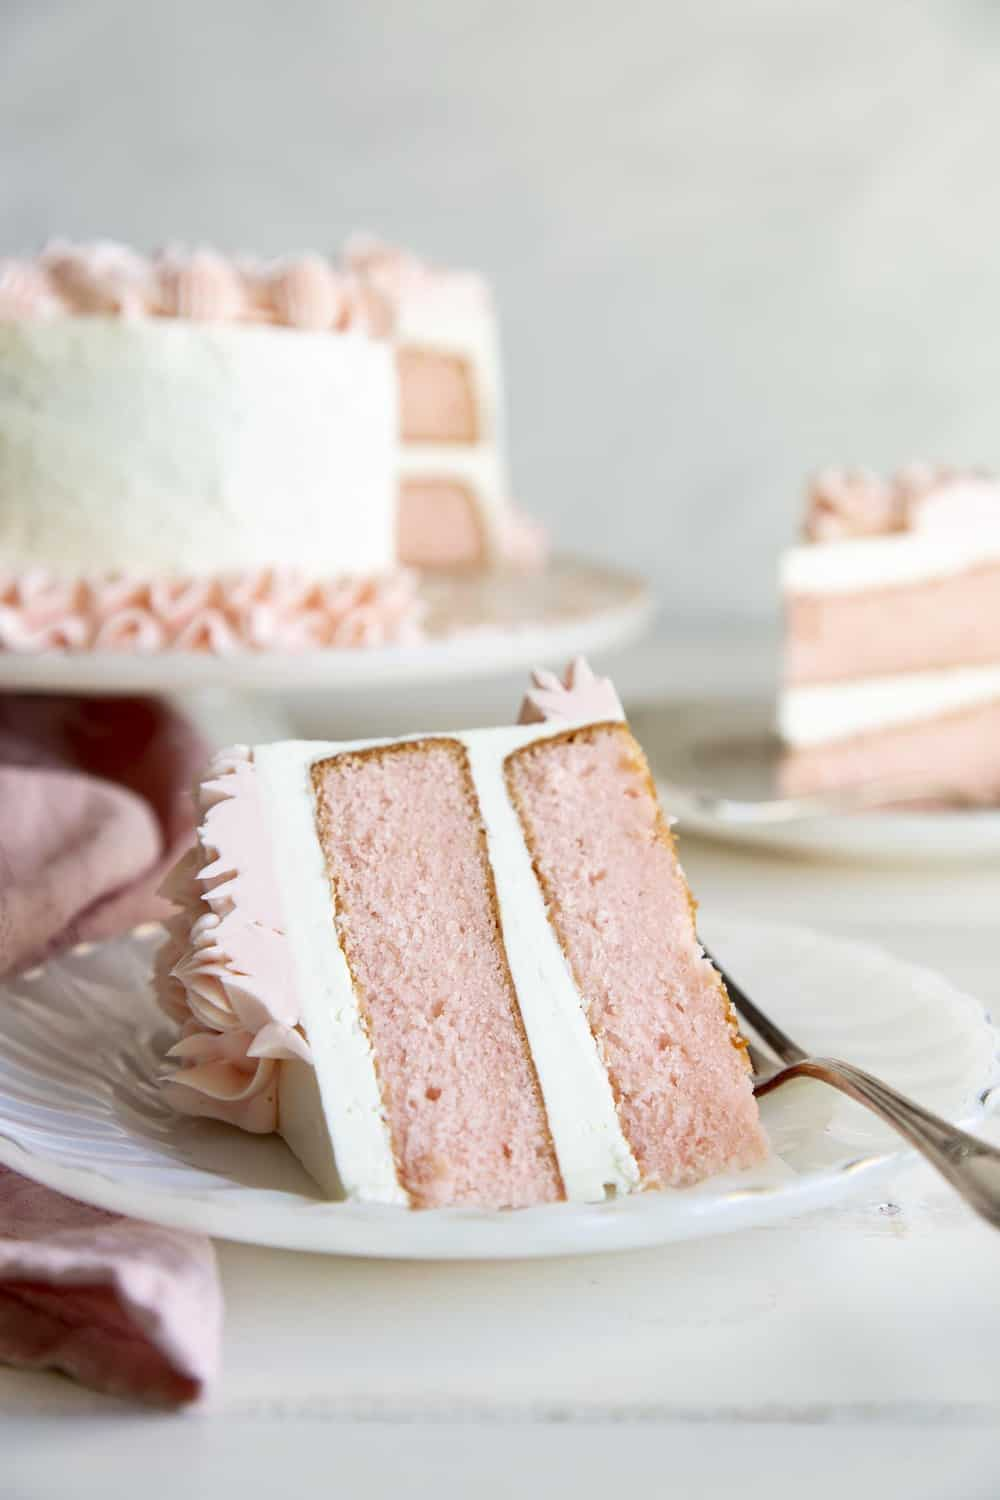 Pink fluffy velvet cake with white frosting and pink swirls on a plate with a fork.